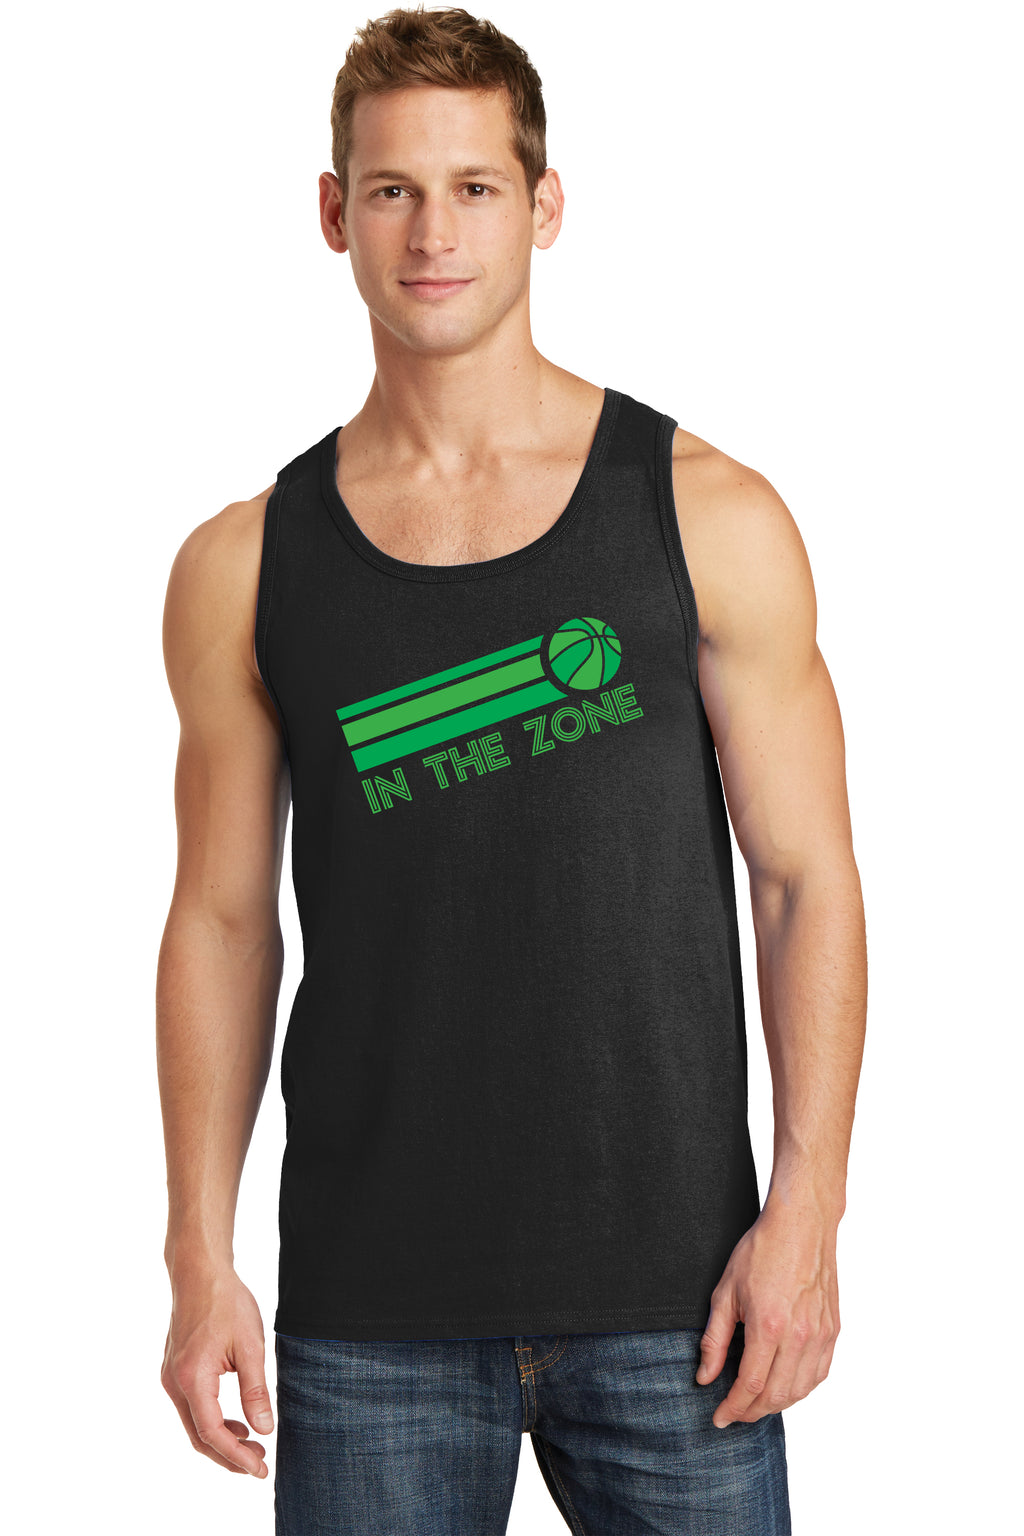 IN THE ZONE - MEN'S TANK